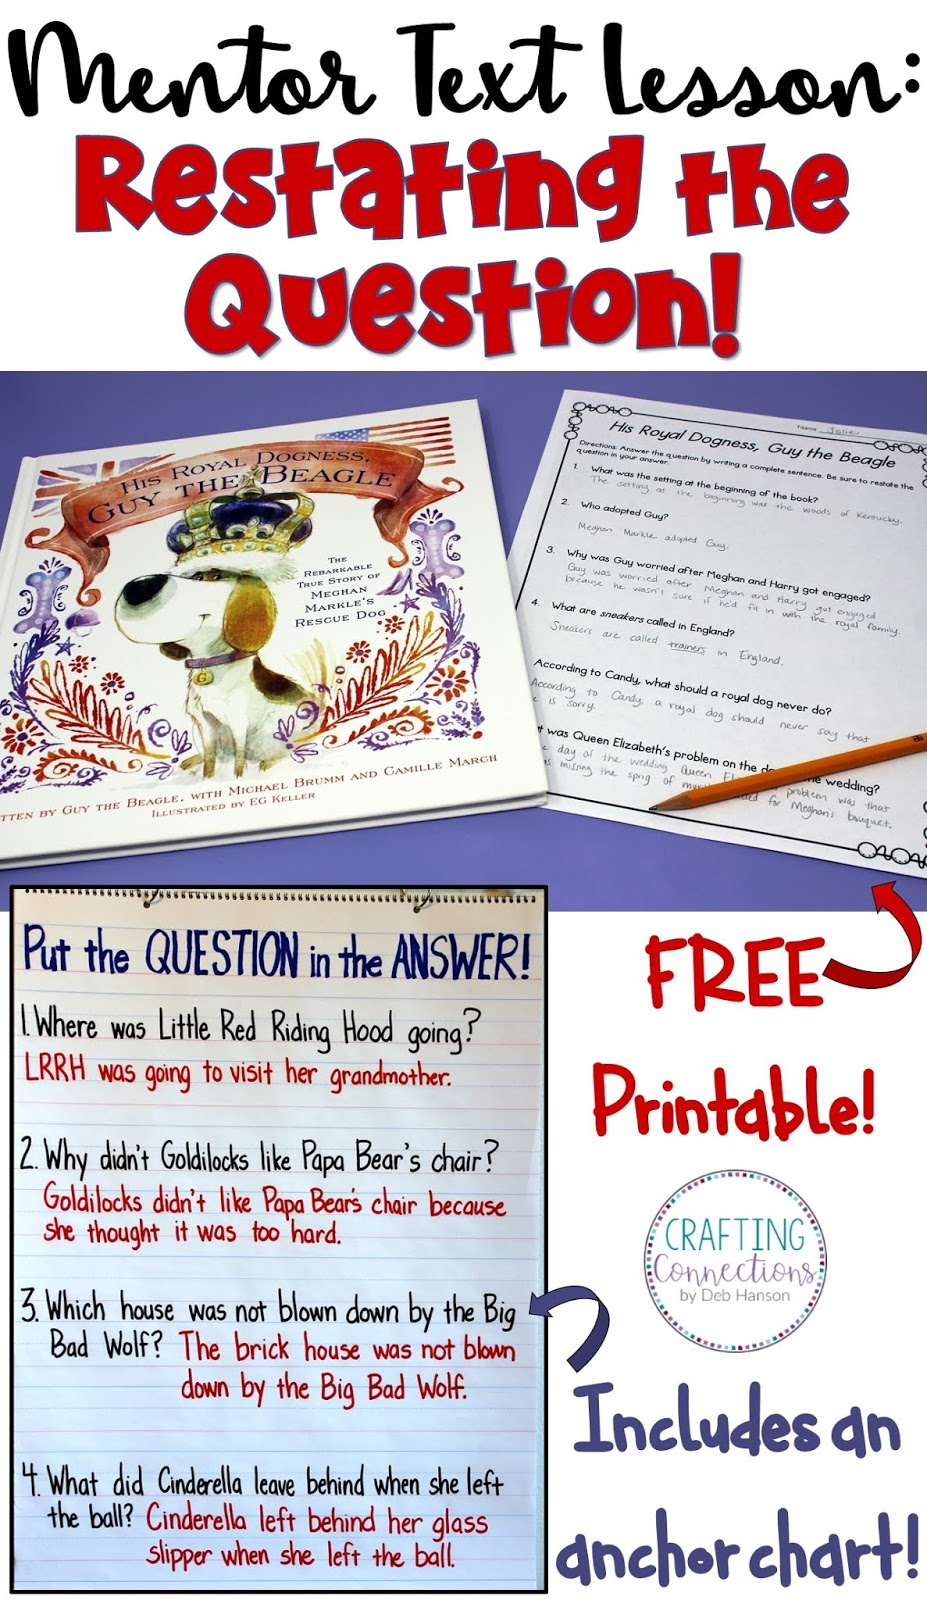 small resolution of Restating the Question in the Answer (Freebie included!)   Crafting  Connections